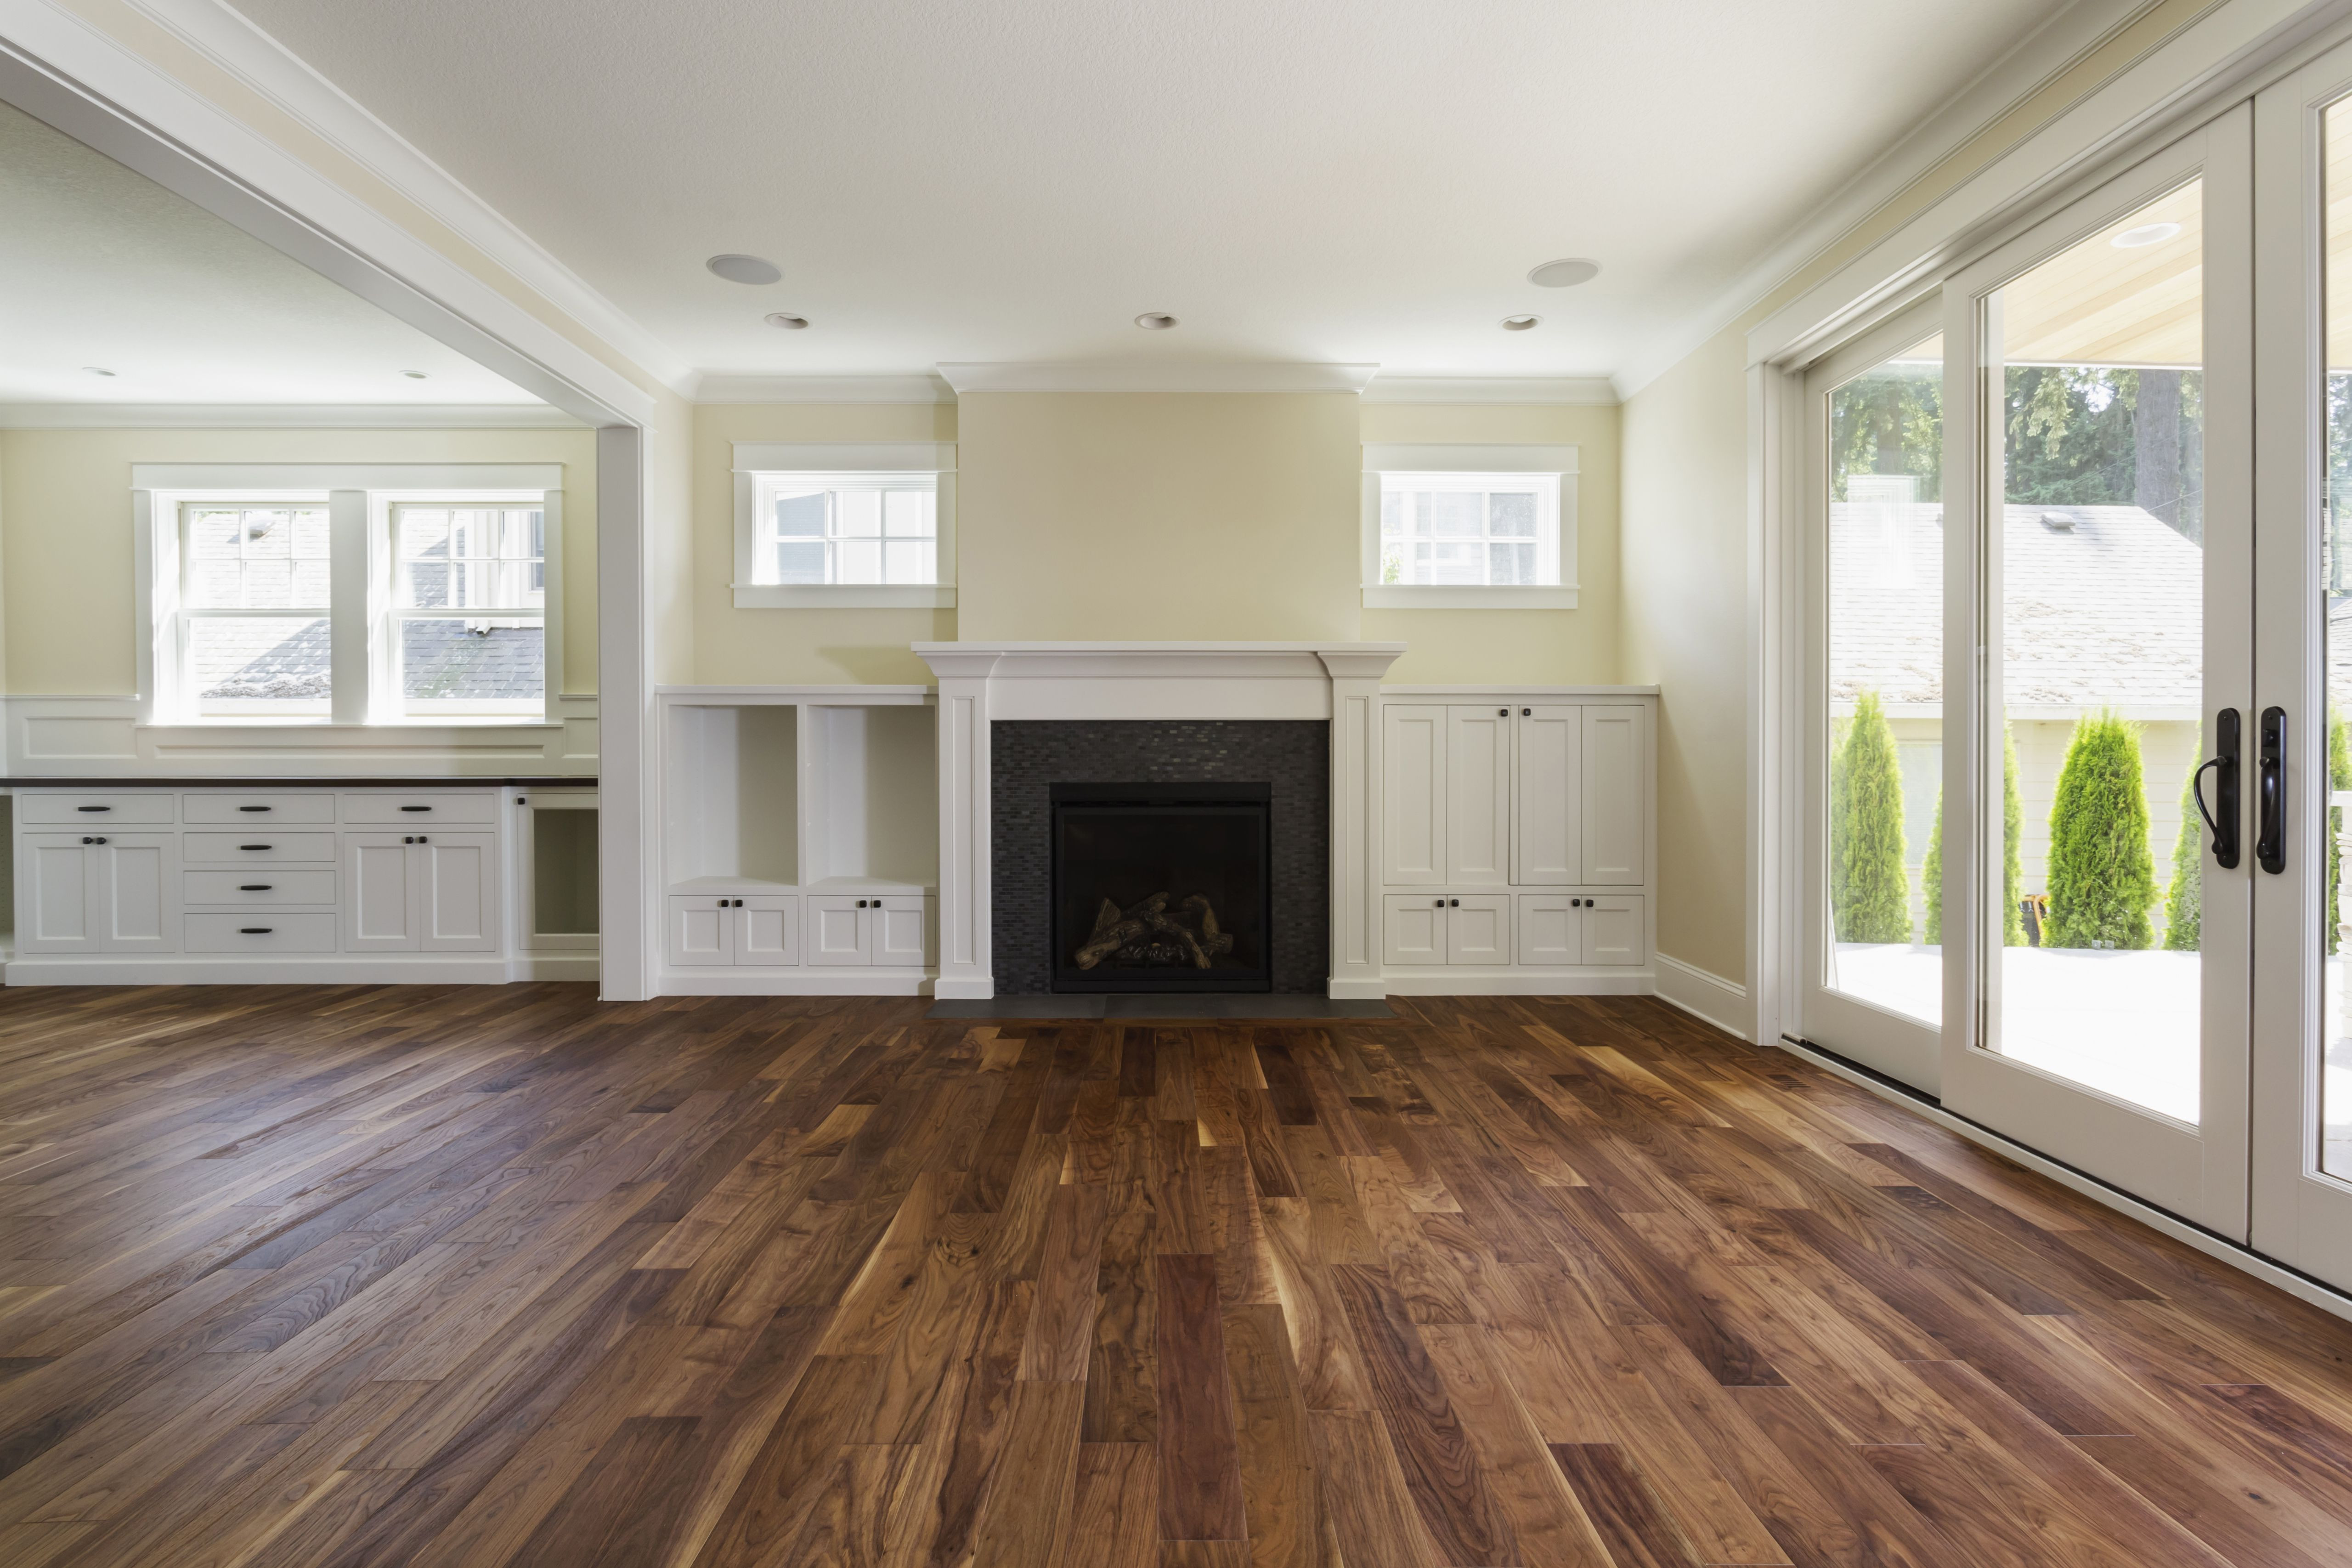 how to install prefinished hardwood floors yourself of the pros and cons of prefinished hardwood flooring throughout fireplace and built in shelves in living room 482143011 57bef8e33df78cc16e035397